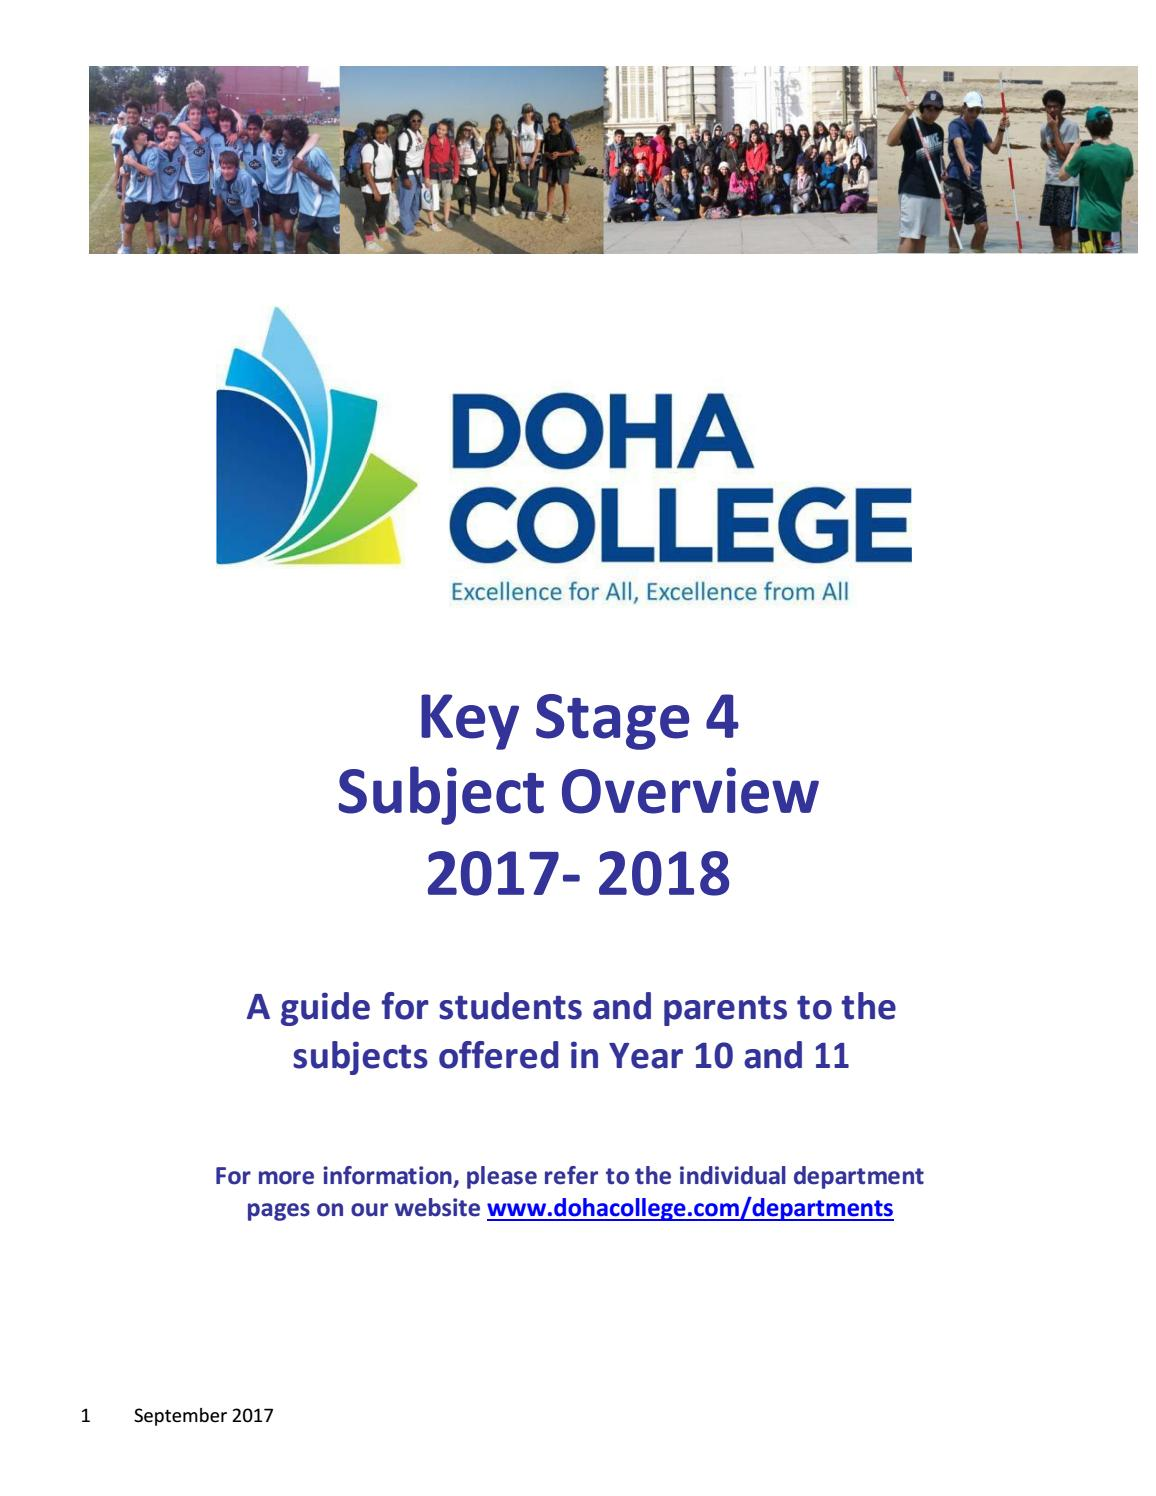 Igcse subjects overview 201516 by doha college issuu fandeluxe Image collections